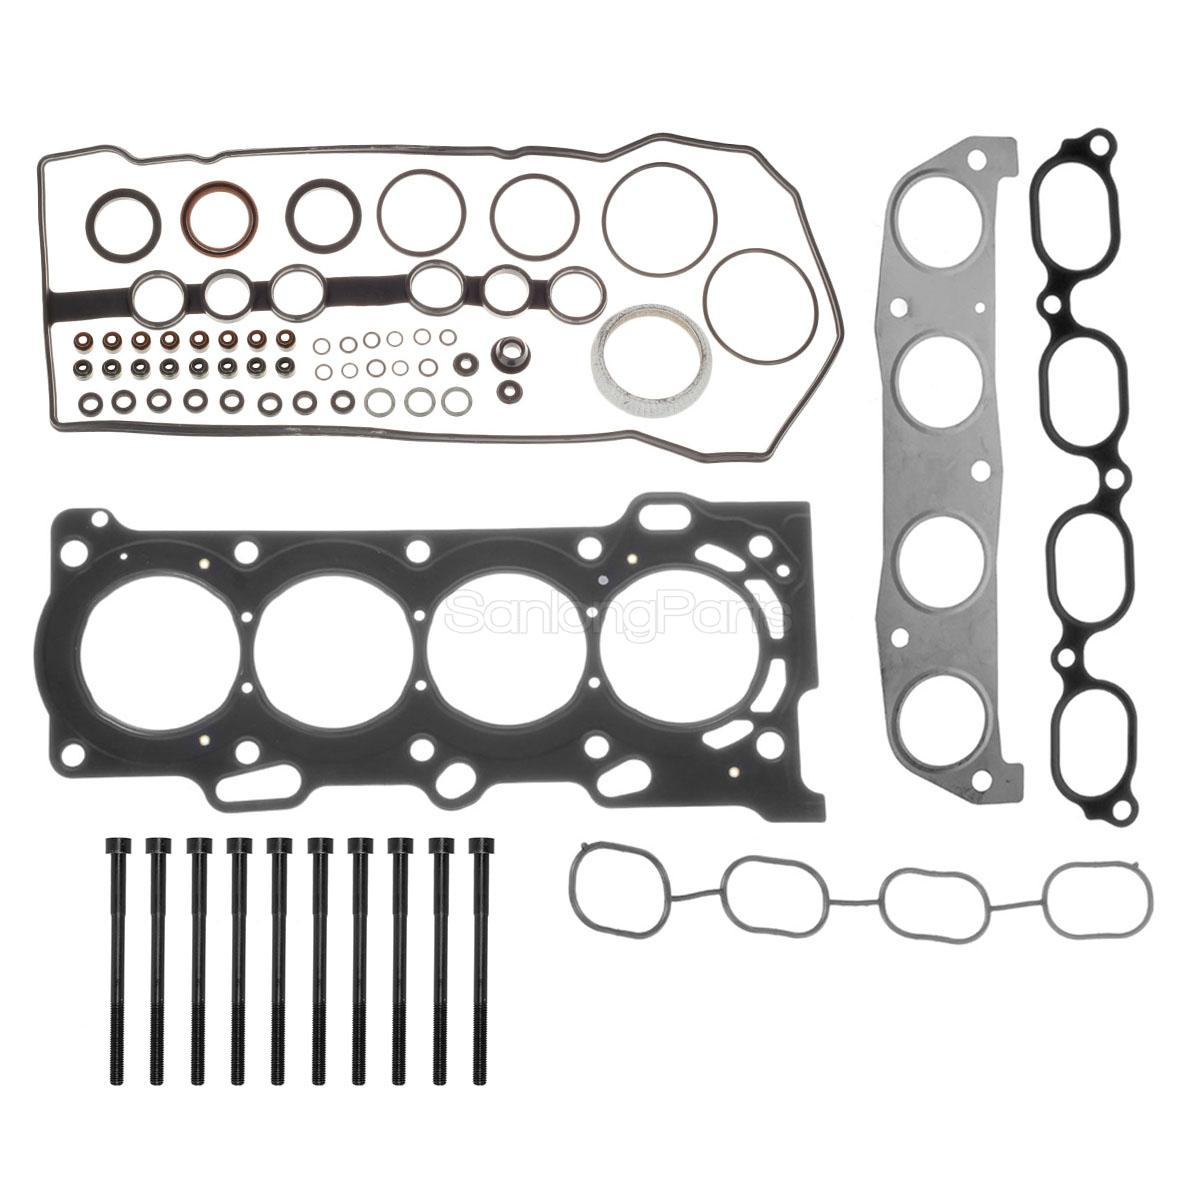 For Toyota Corolla Chevrolet 98 05 1 8l 1zzfe Cylinder